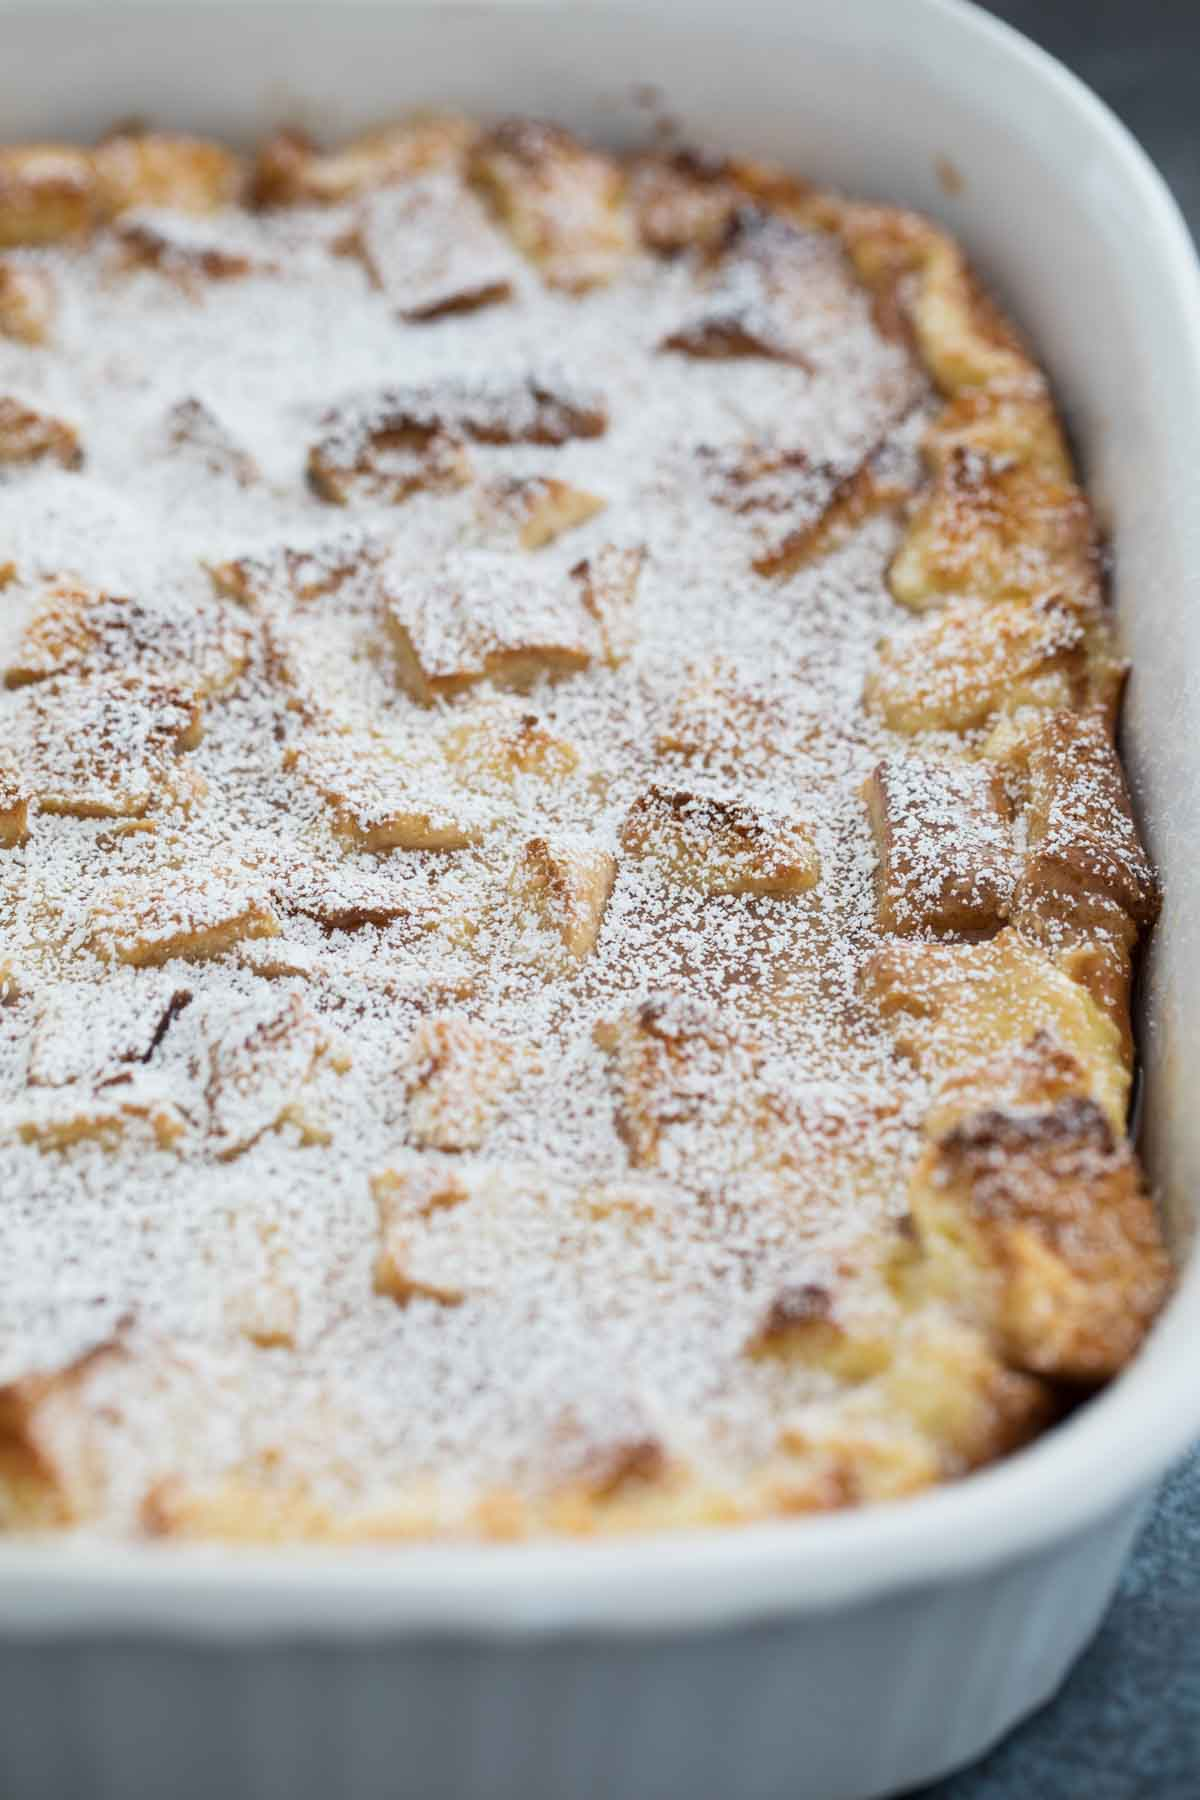 casserole dish with French Toast Casserole sprinkled with powdered sugar